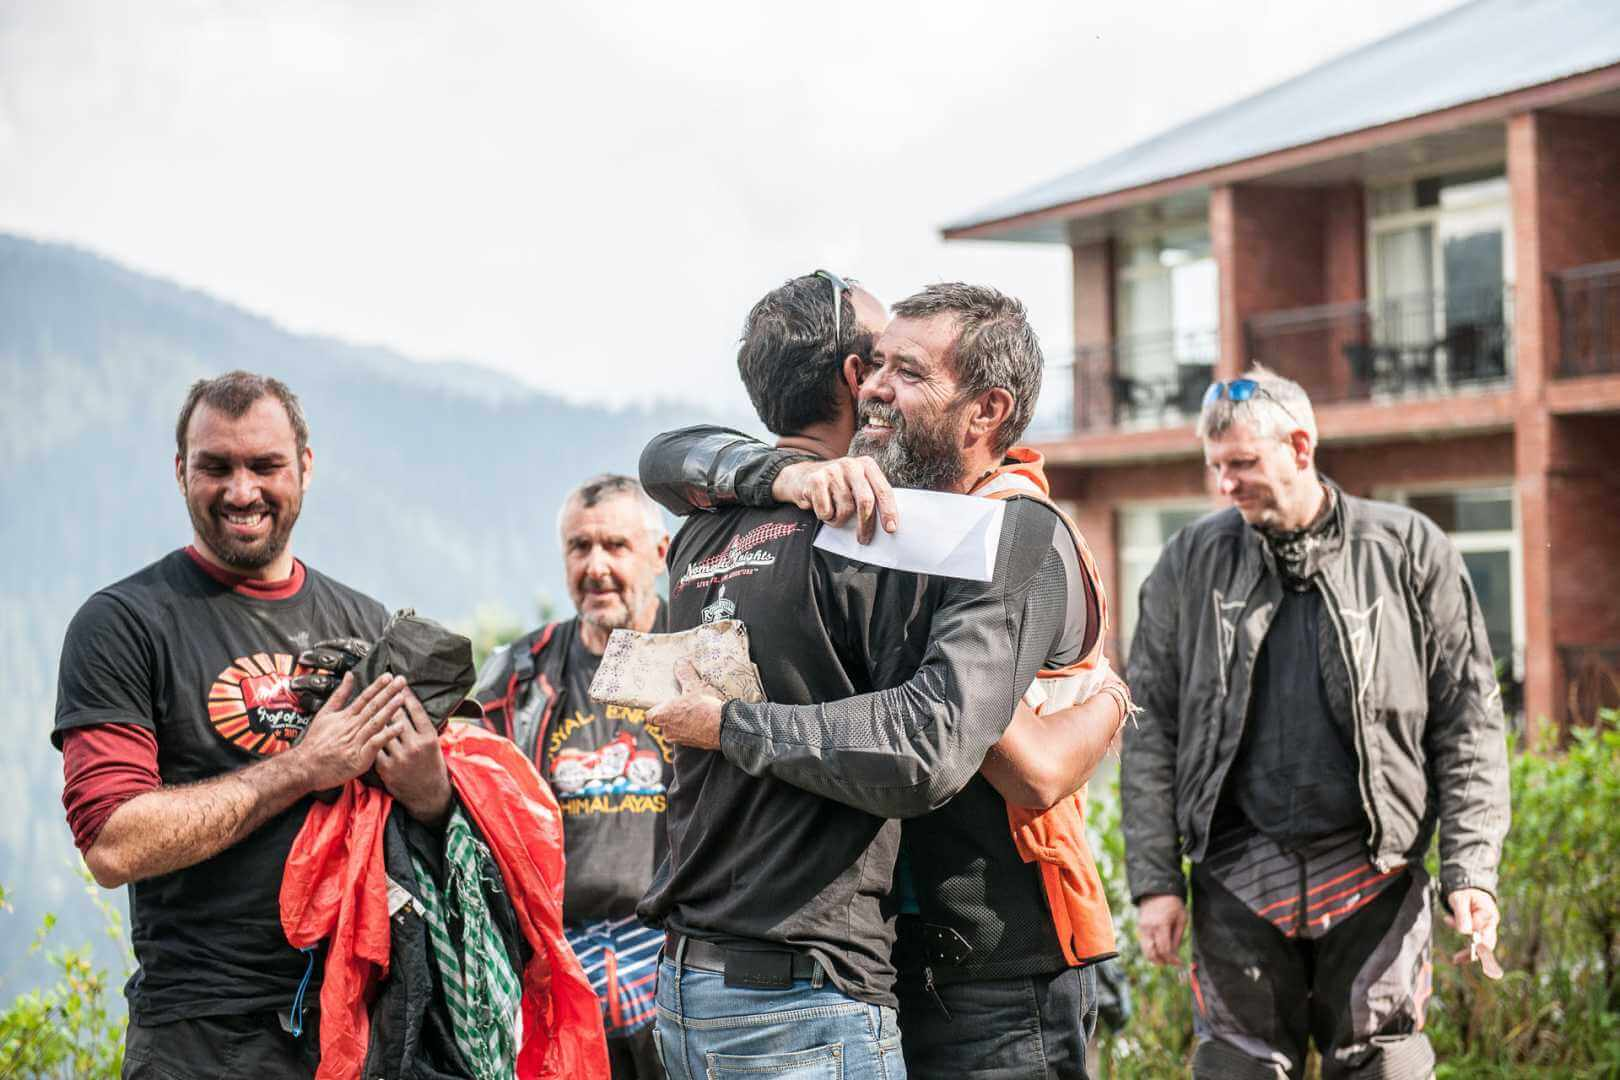 Group of happy motorcyclists in Indian mountain range